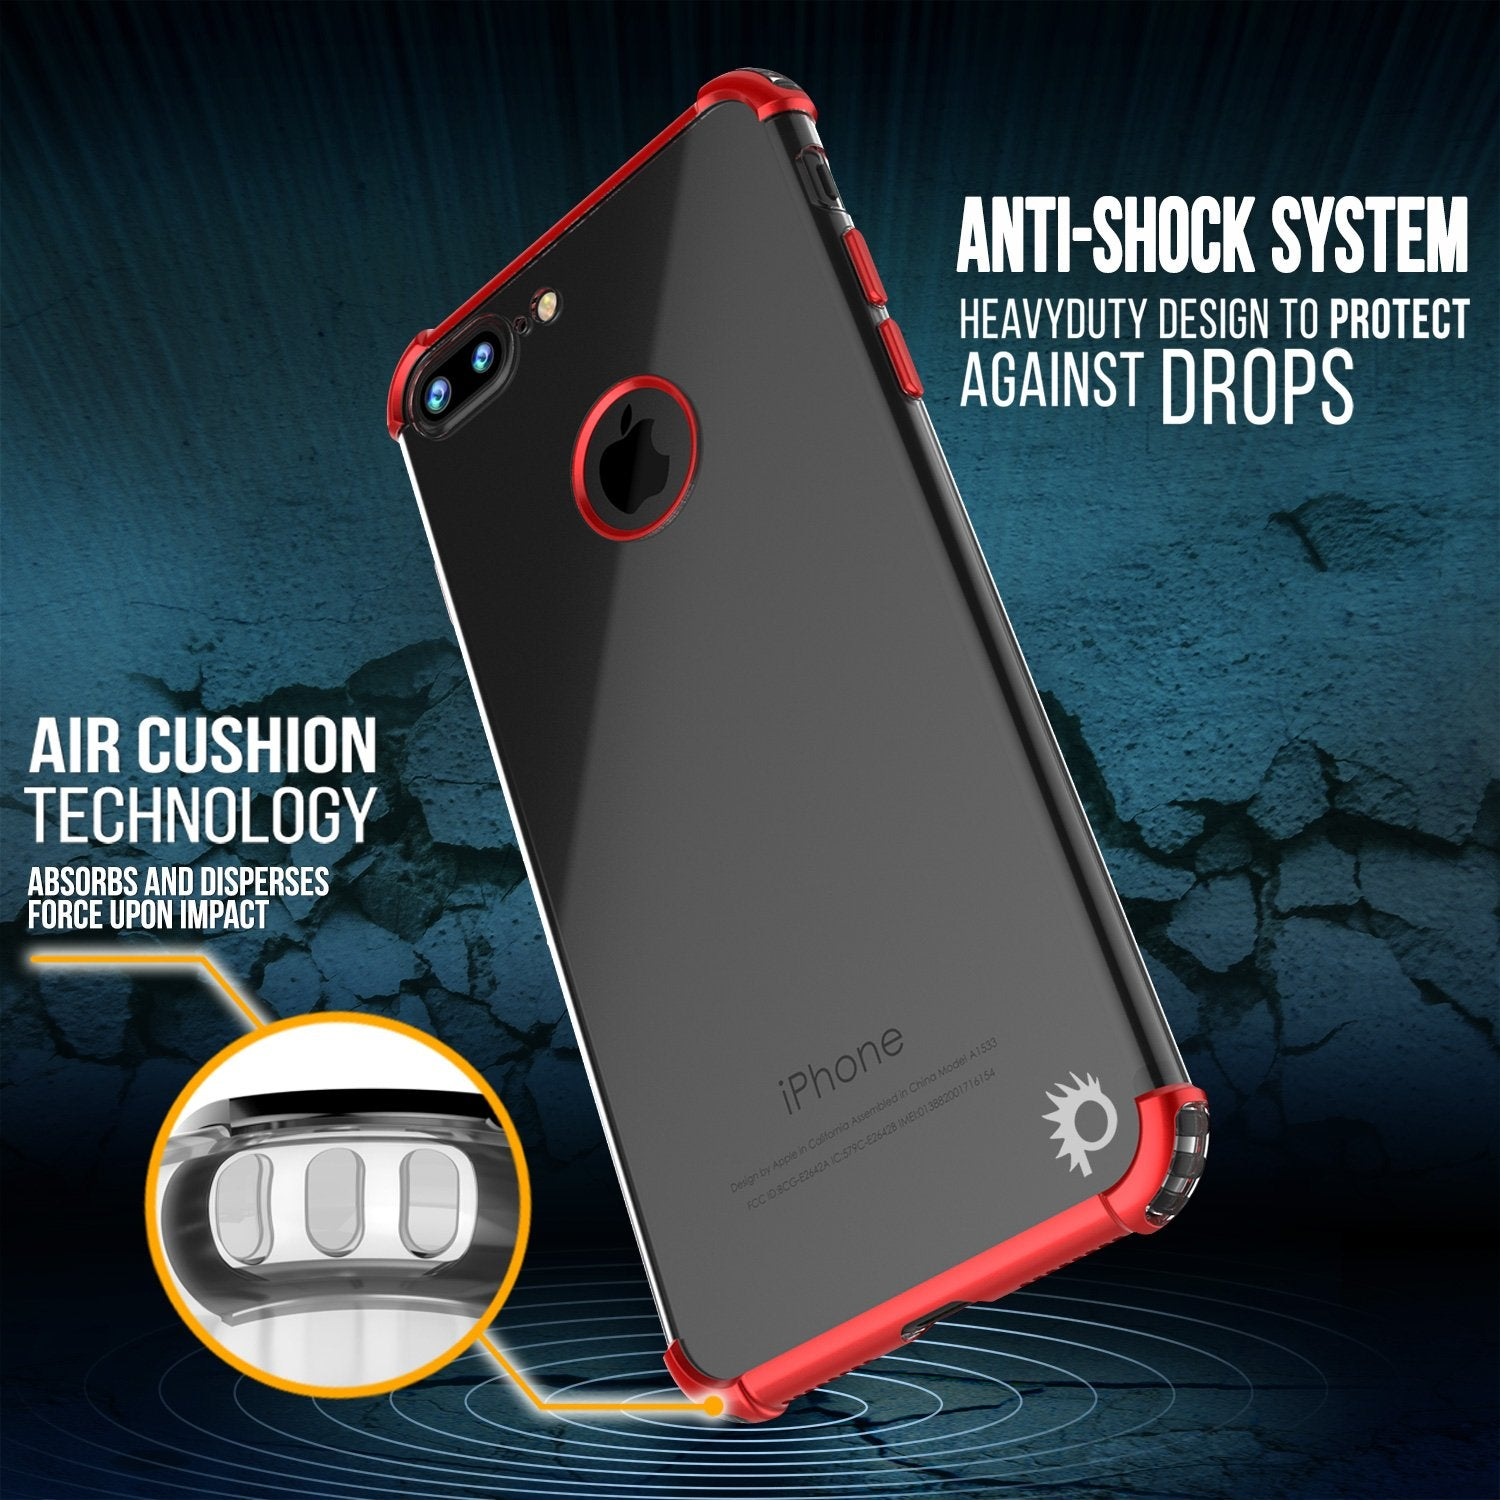 iPhone 8 PLUS Case, Punkcase [BLAZE SERIES] Protective Cover W/ PunkShield Screen Protector [Shockproof] [Slim Fit] for Apple iPhone 7/8/6/6s PLUS [Red]